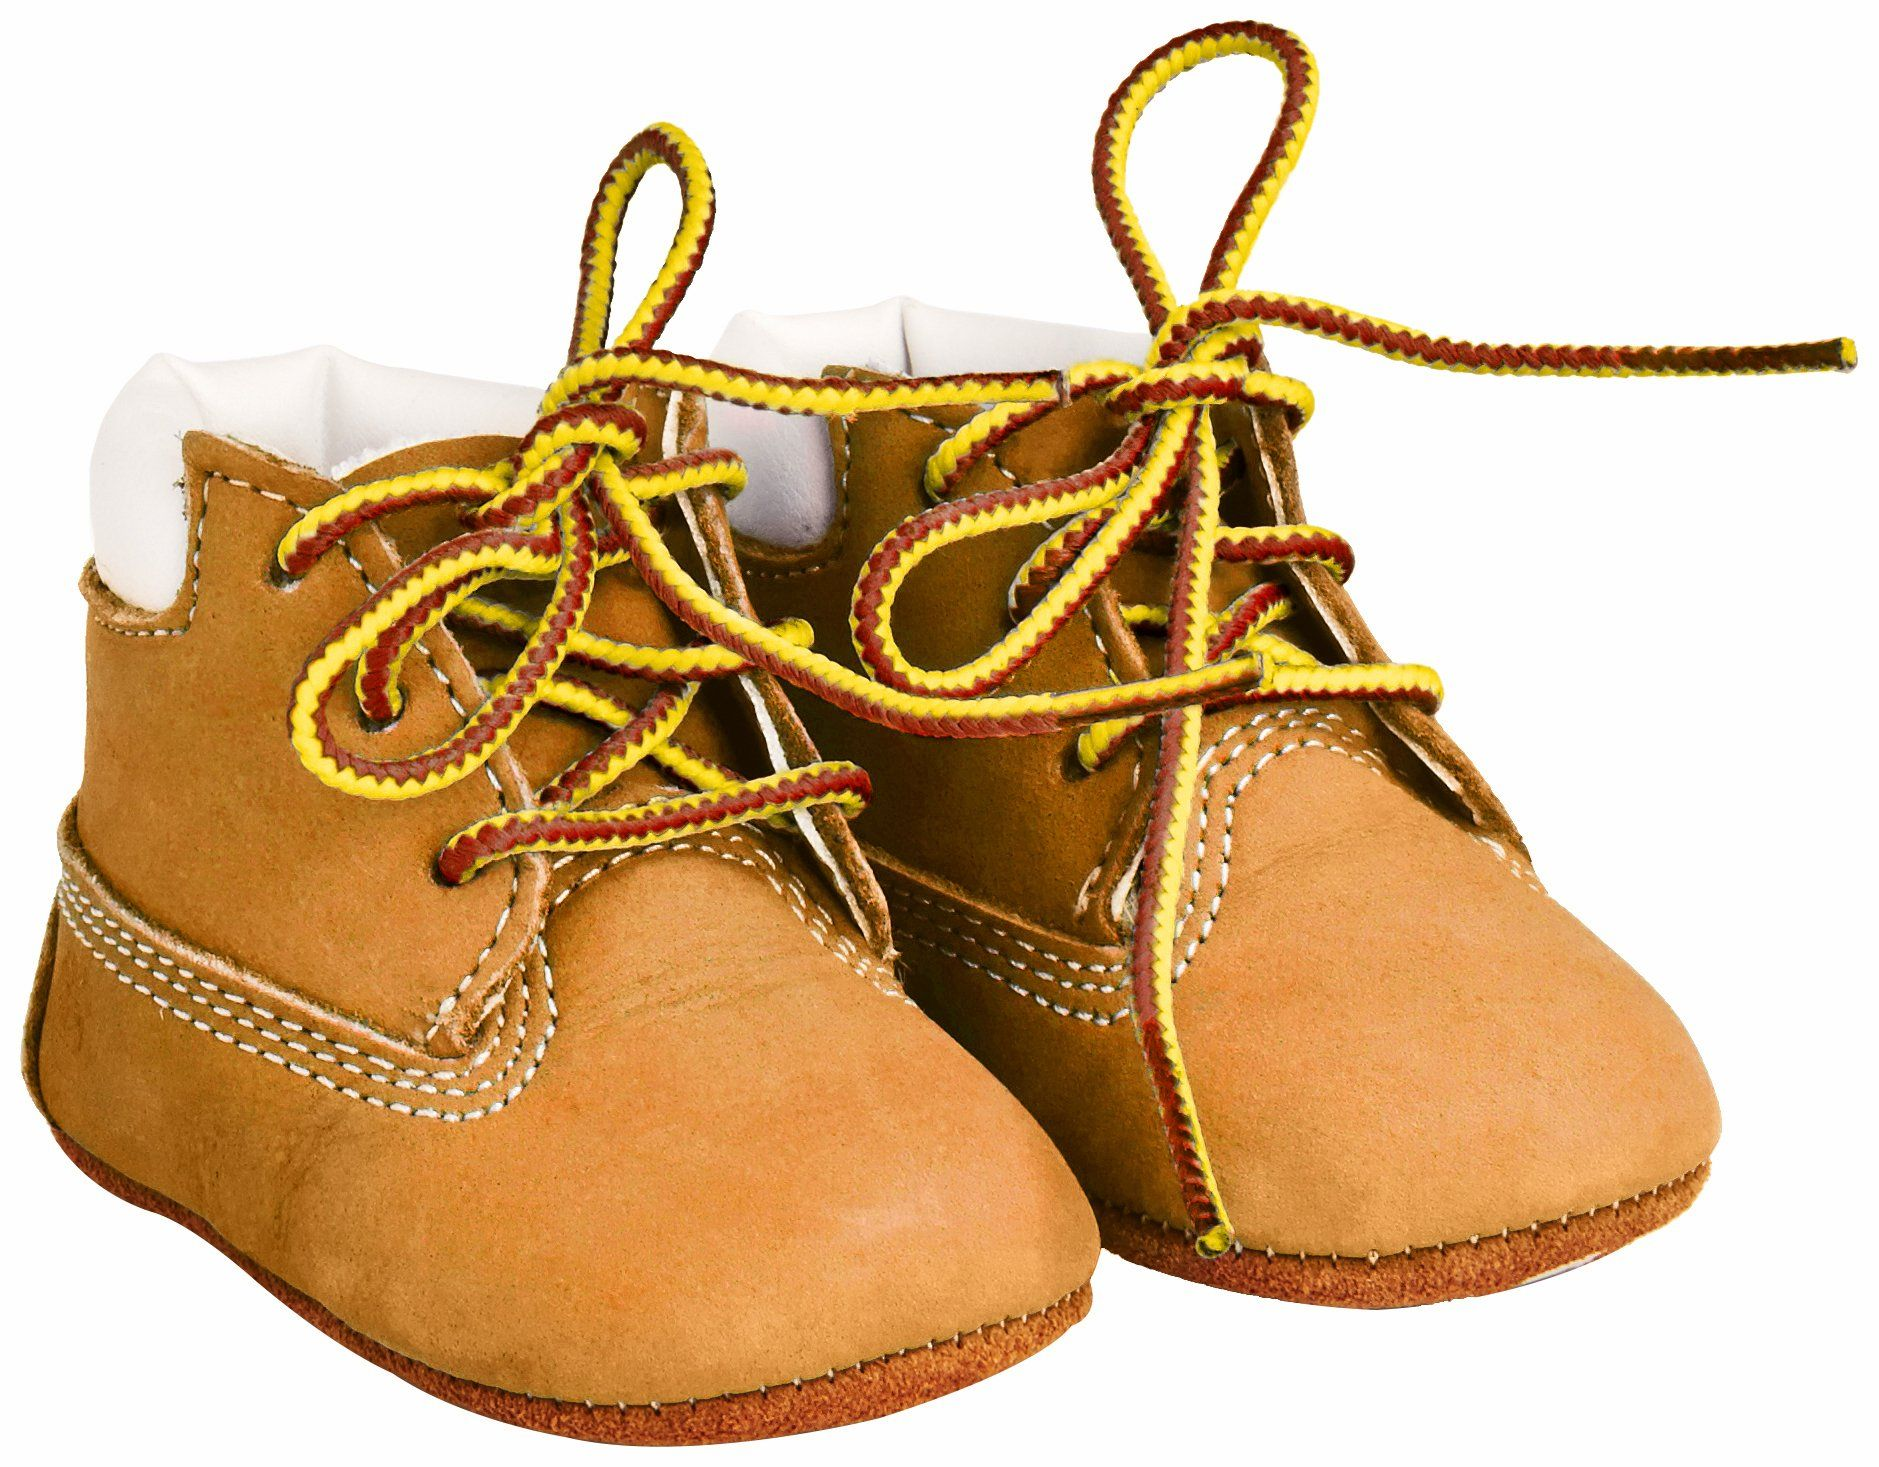 3fa5c65ac48 Timberland Crib With Hat Bootie Infant ToddlerWheat3 M US Infant   Click  image for more details. (This is an affiliate link)  TimberlandBootsforBaby